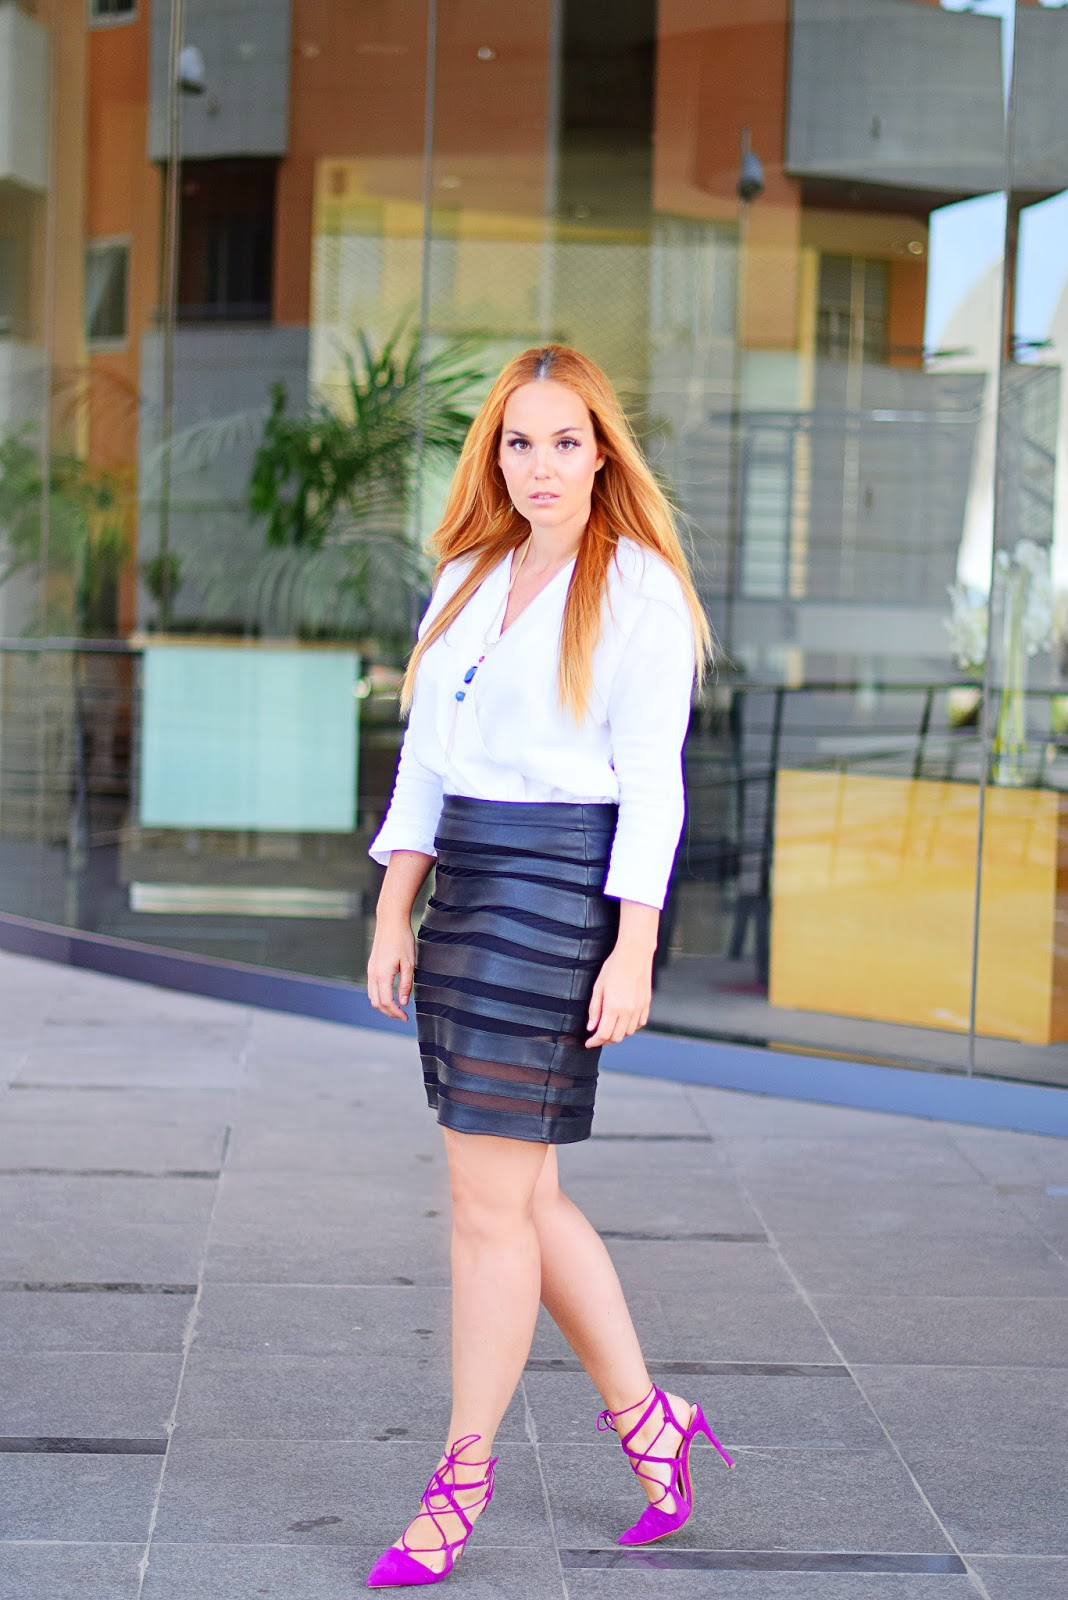 nery hdez, aliexpress, nephra, lace up sandals, buganvilla sandals, wear to work look,